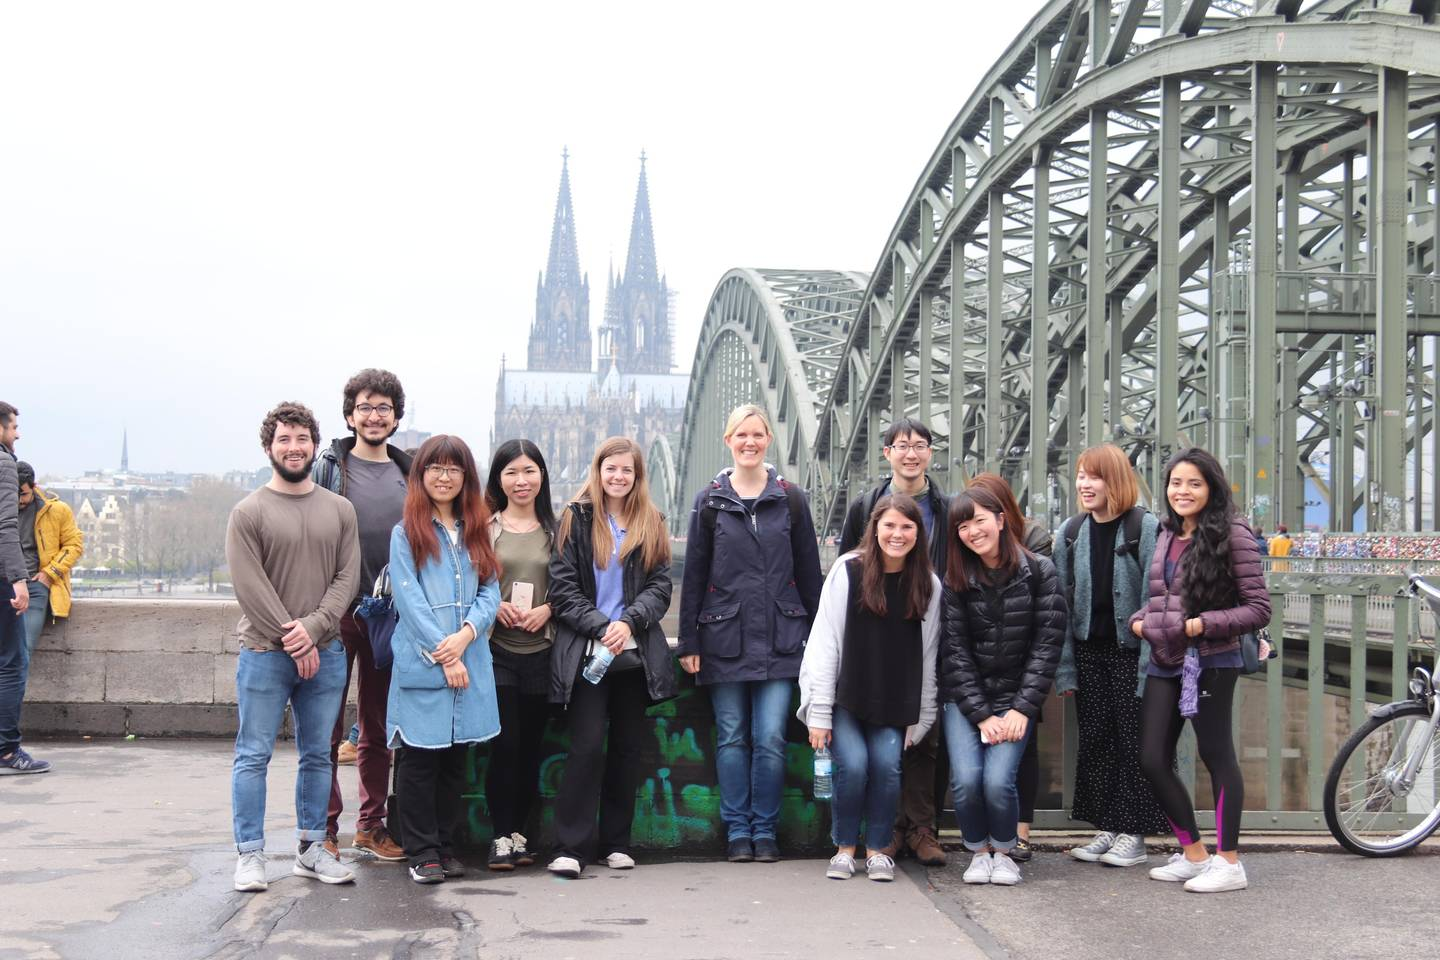 Group picture in front of the Hohenzollern bridge an the cologne cathedral in the background